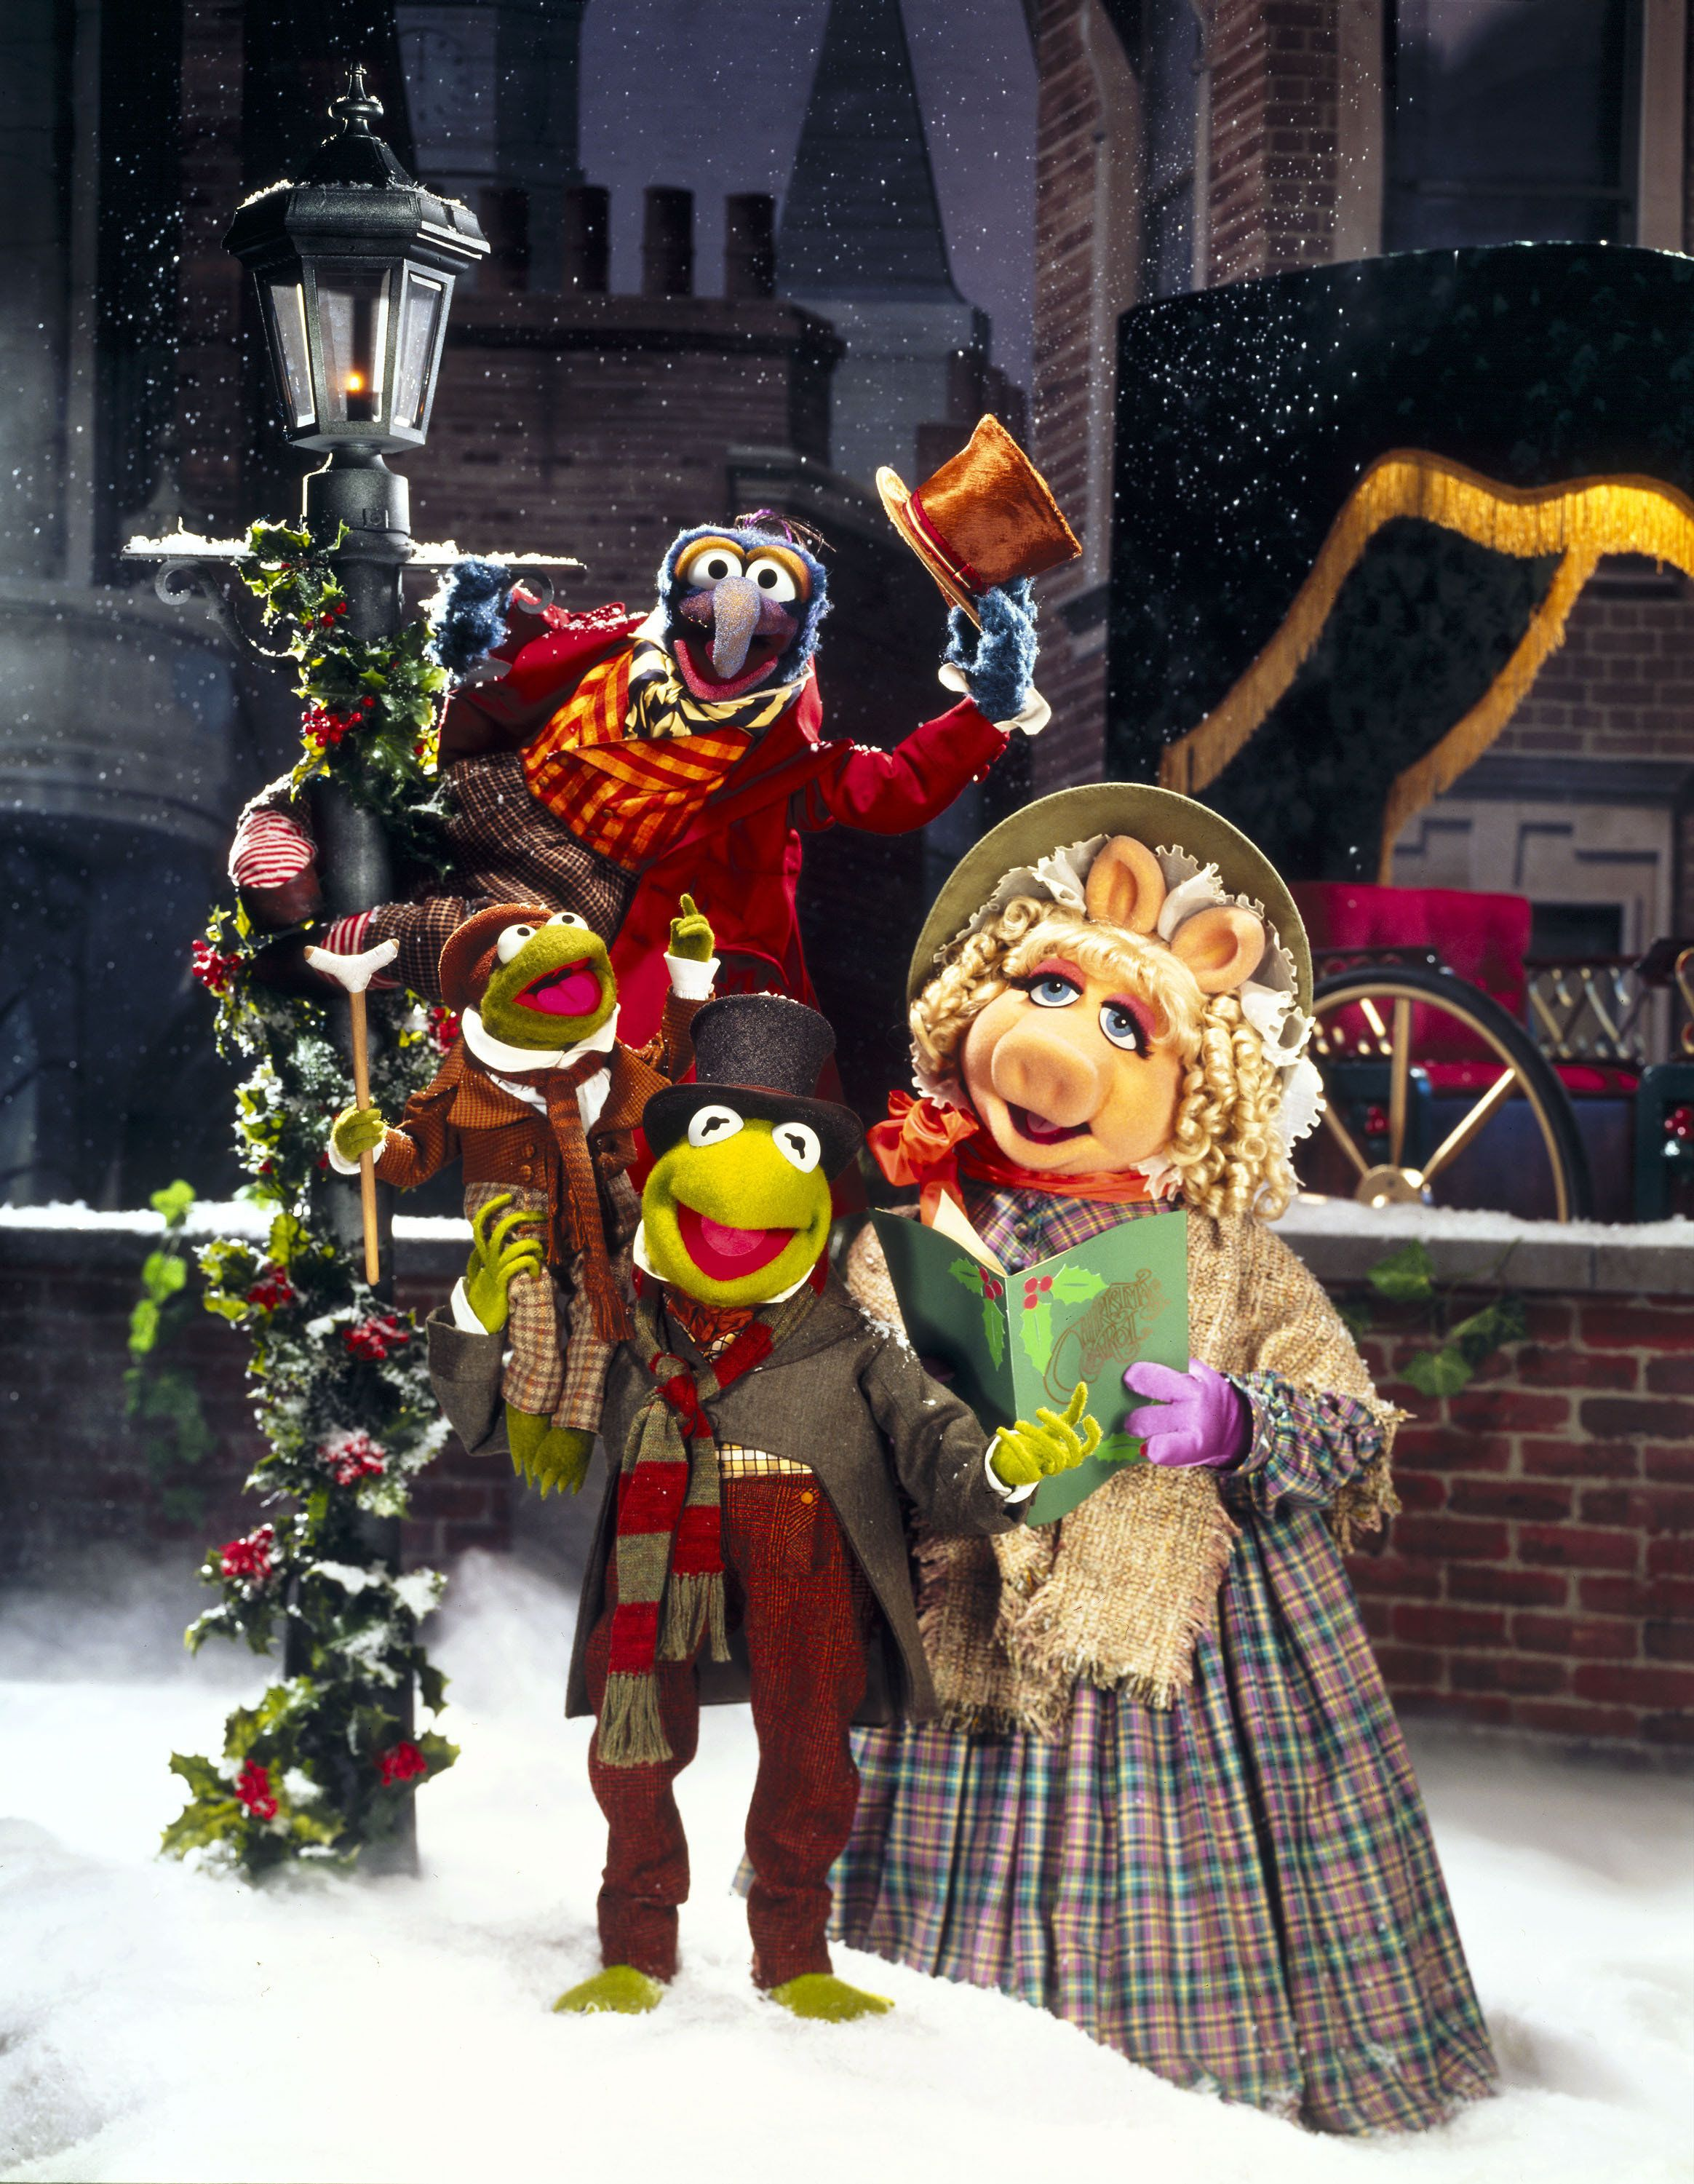 AMAZING MUPPETS: 16 Reasons Why 'Muppet Christmas Carol' Is Undoubtedly The Best Festive